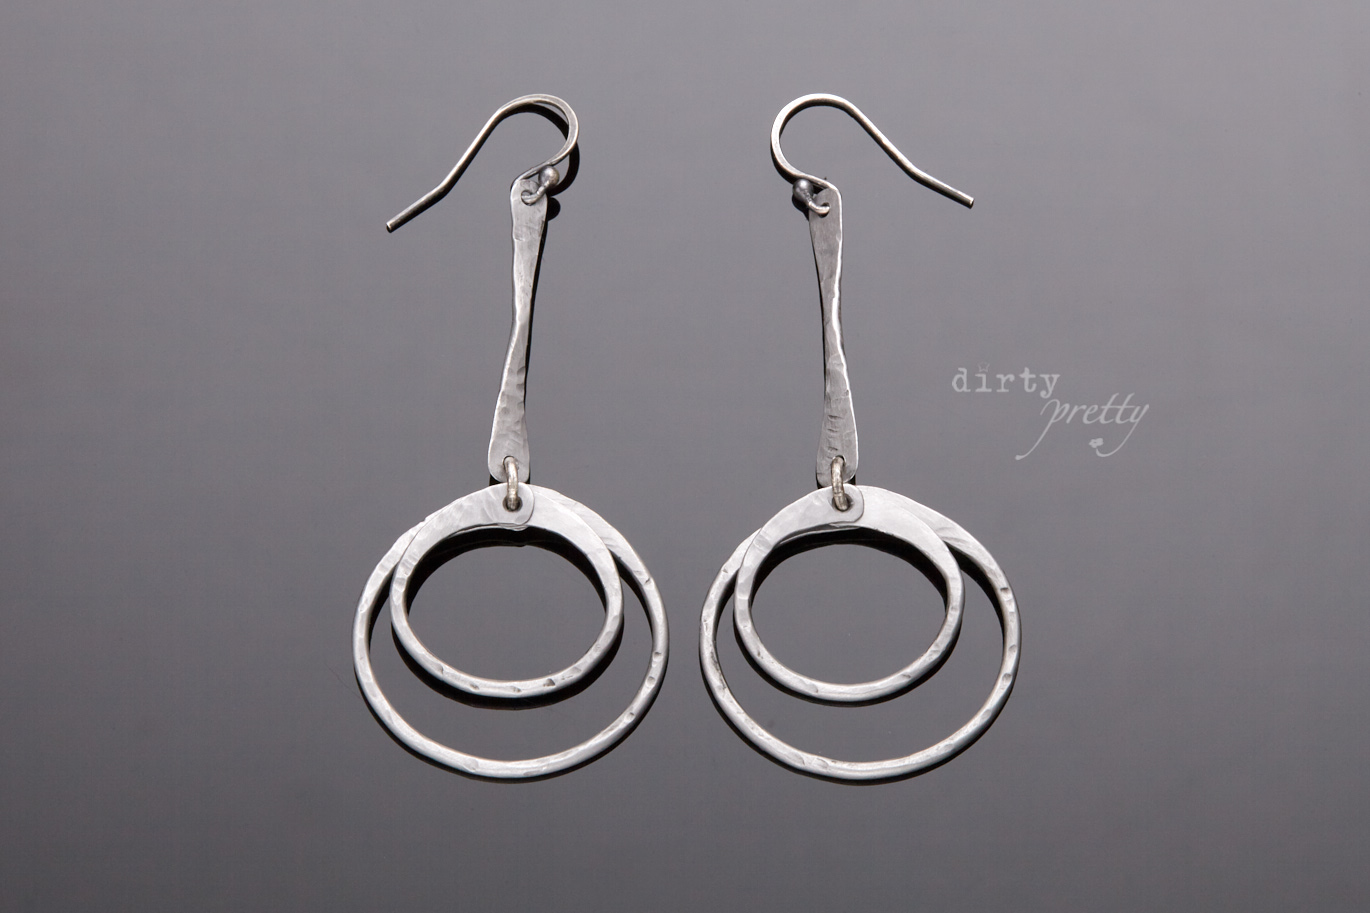 Anniversary Gifts for wife - Double Happiness steel Earrings by dirtypretty artwear - gifts for wife